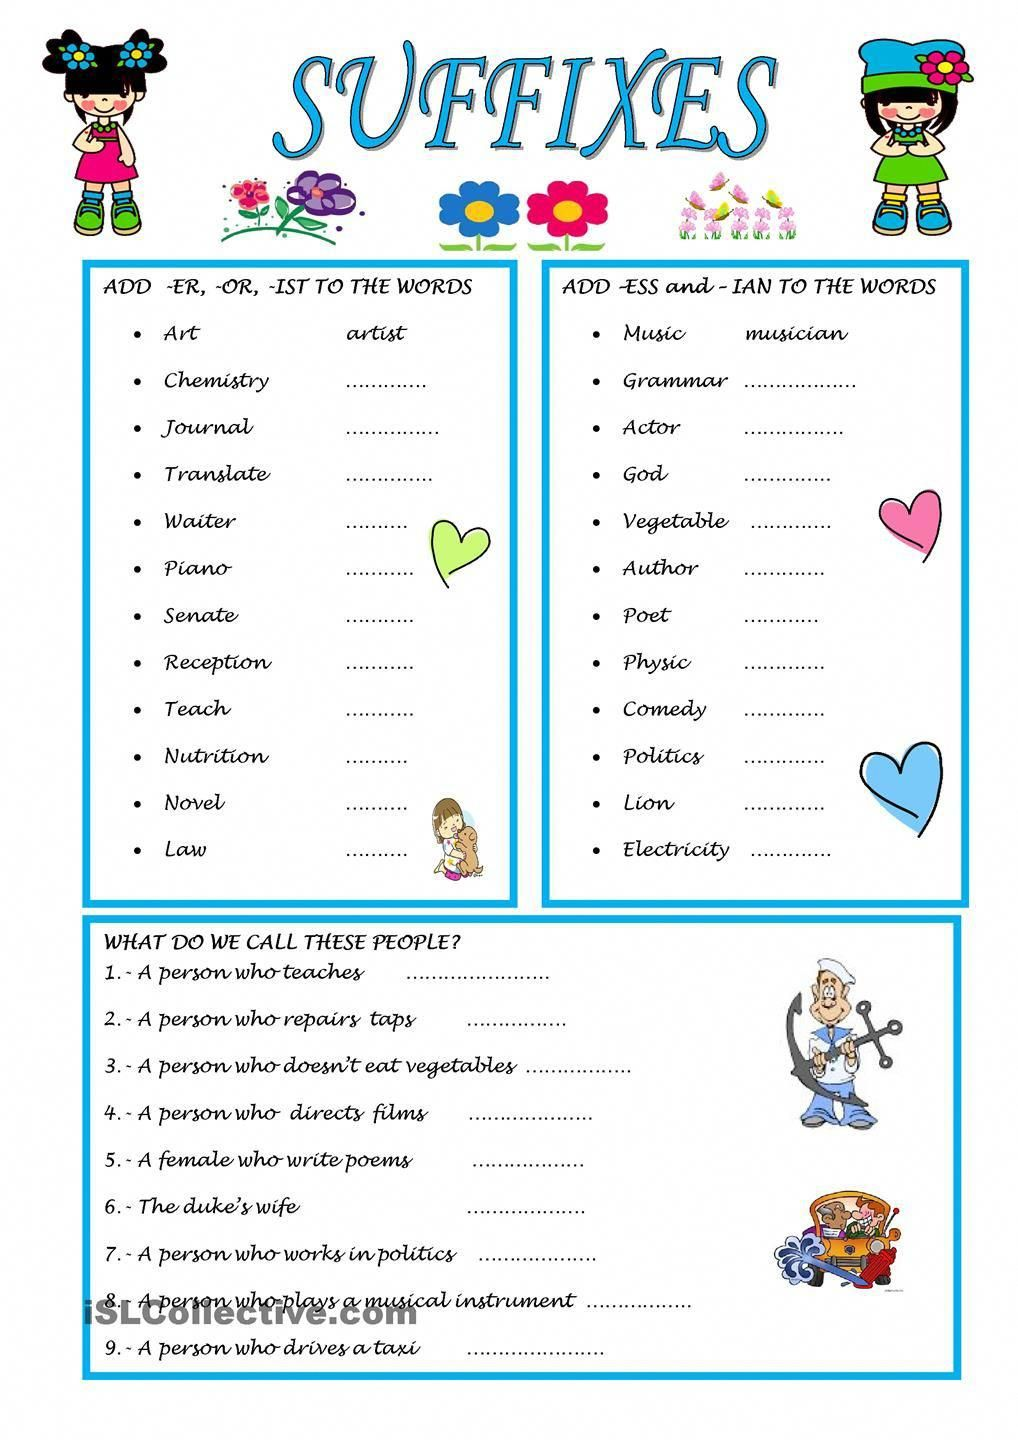 Suffixes Formationanglais Prefixes And Suffixes Suffixes Worksheets Word Puzzles For Kids [ 1440 x 1018 Pixel ]